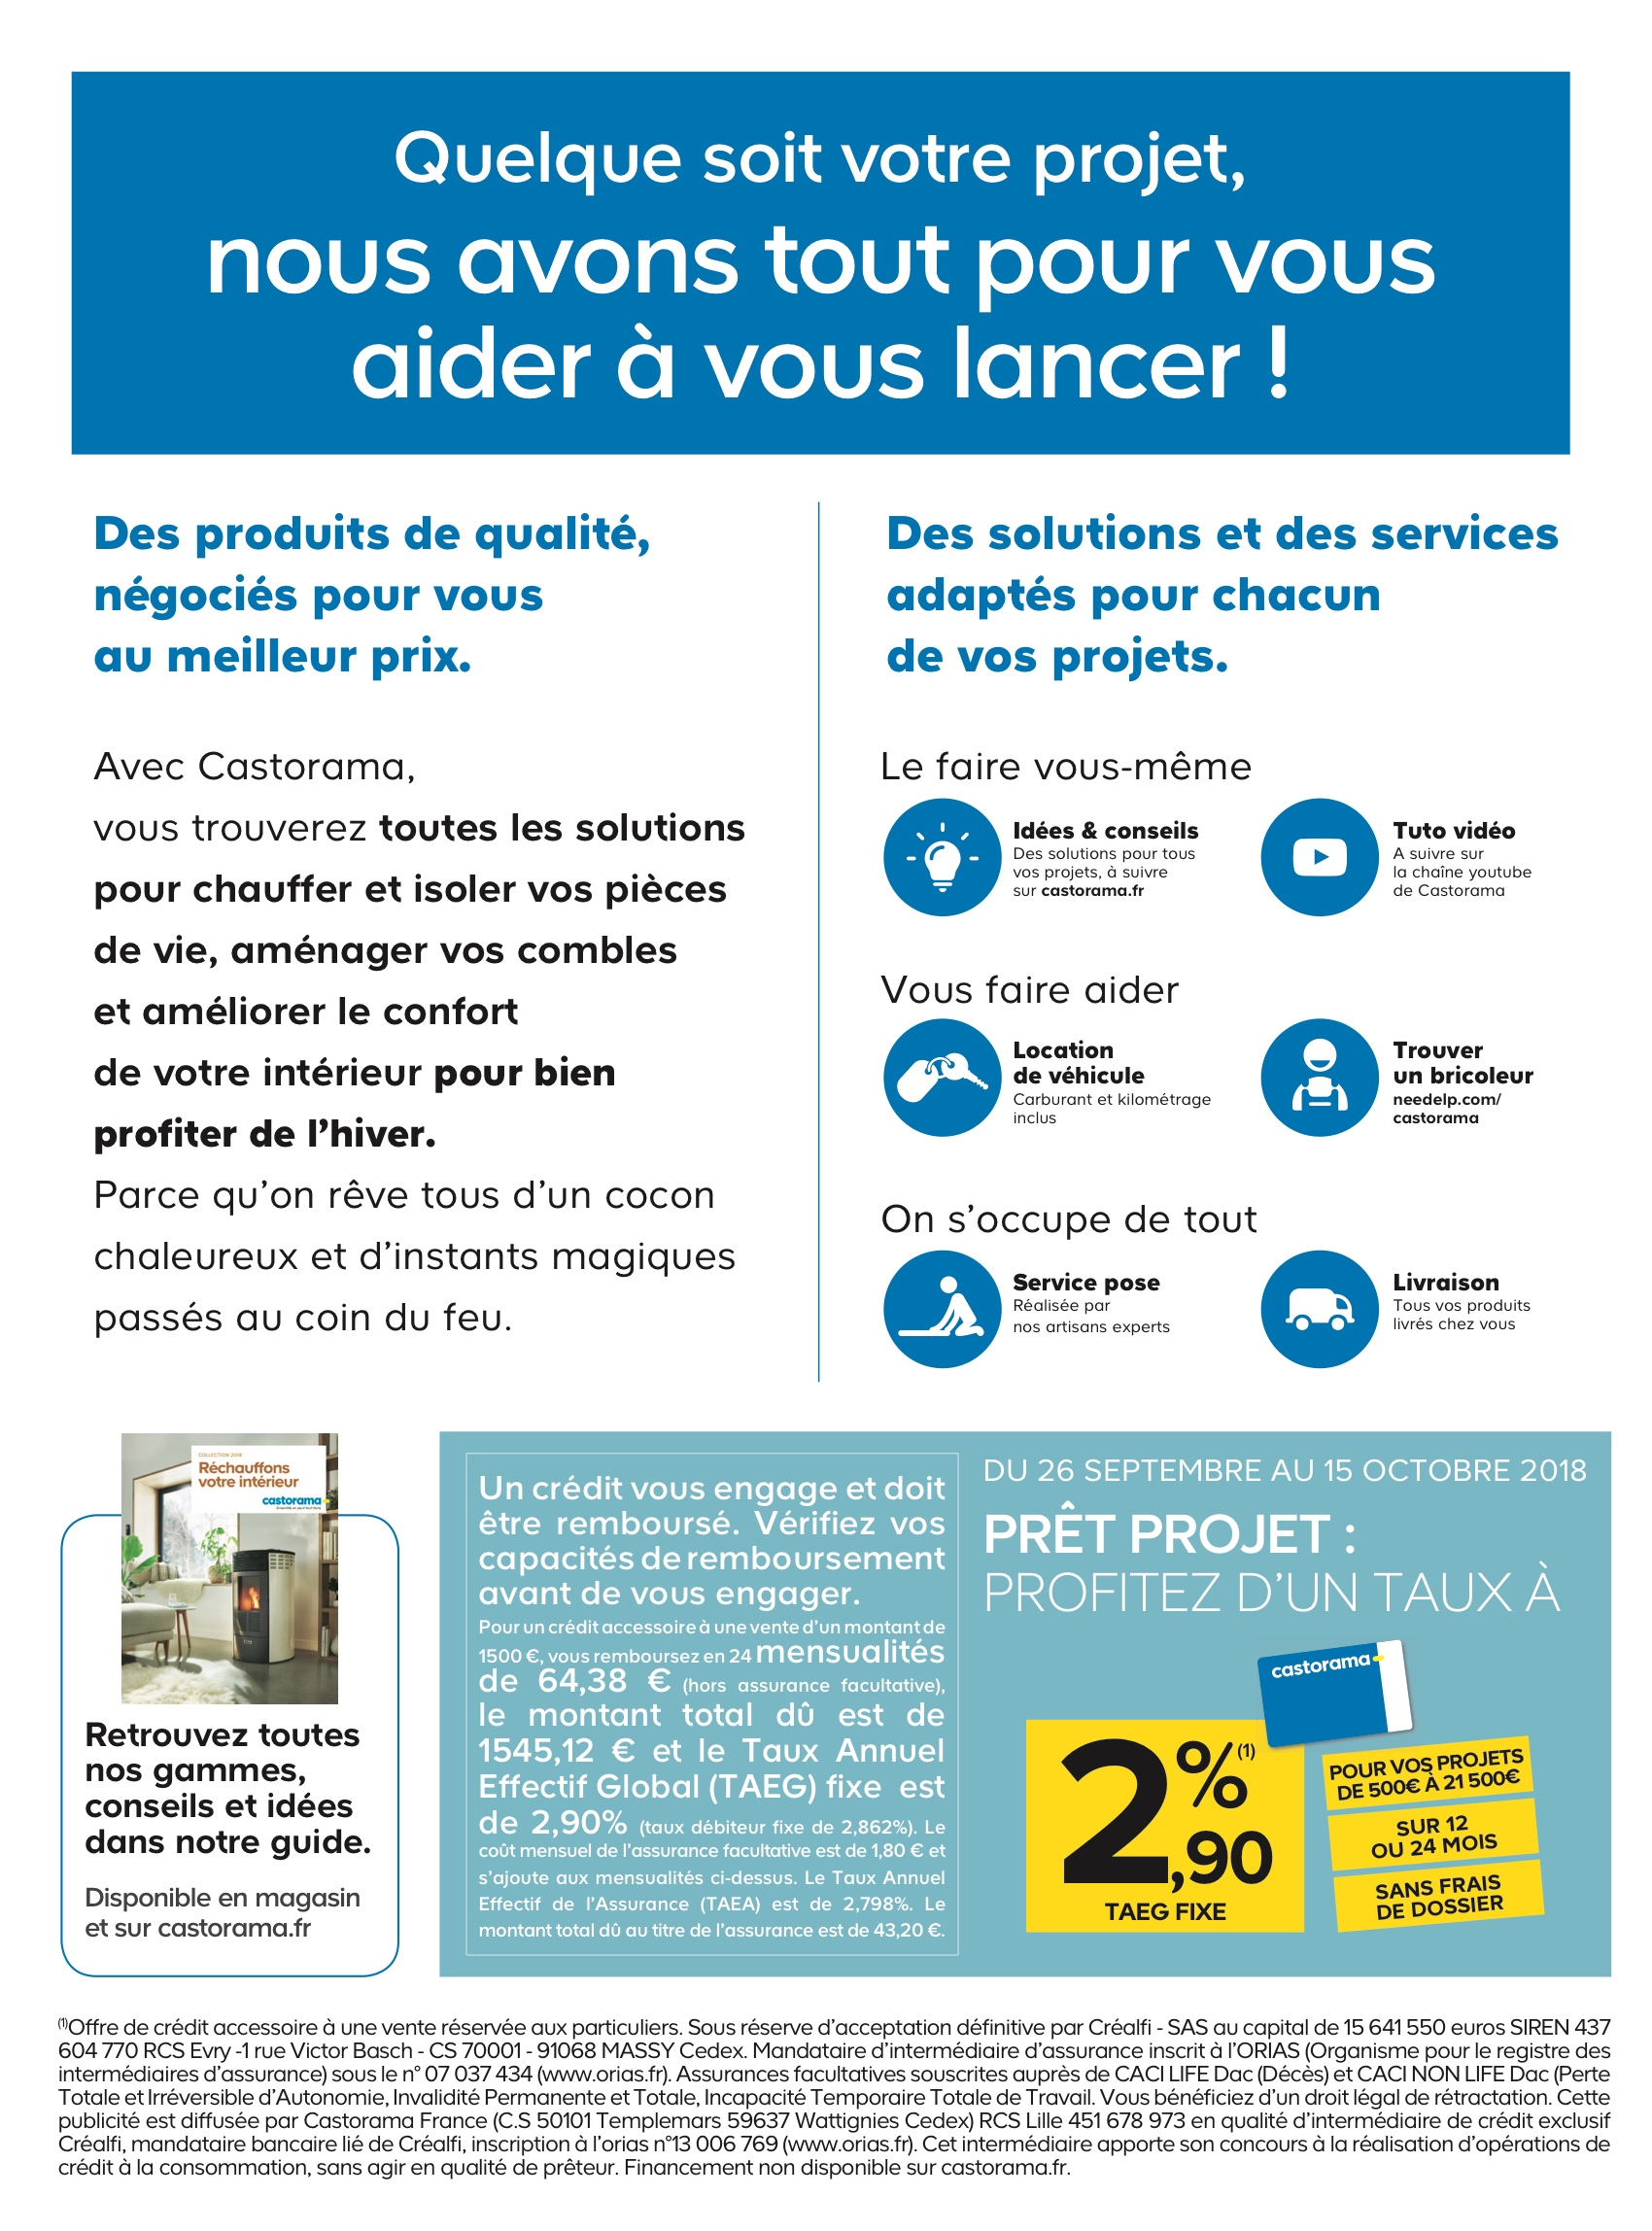 Sept Projet Chauffage Et Isolation 2018 Flip Ebook Pages 1 40 Anyflip Anyflip